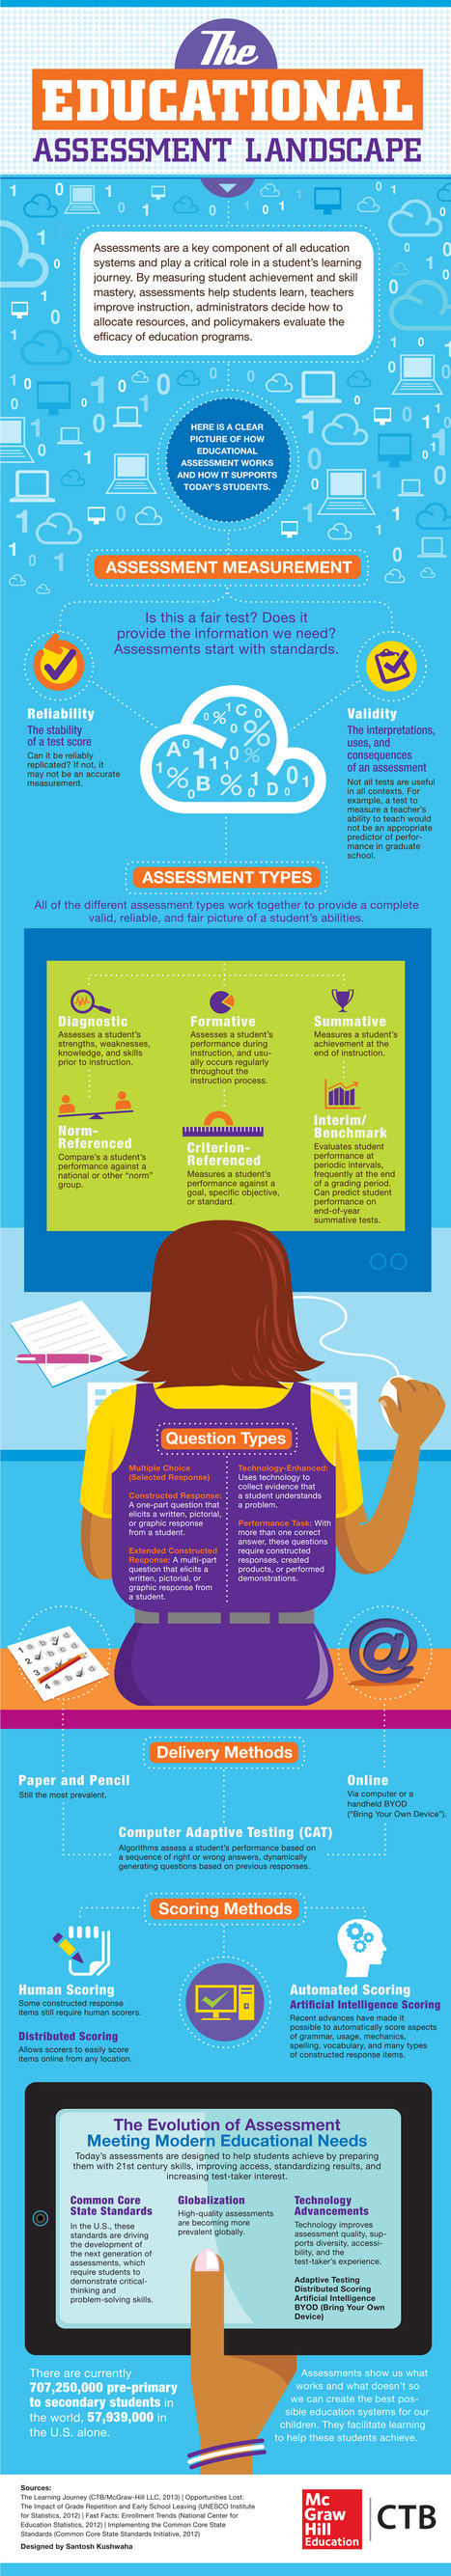 Infographic. The educational assessment landscape | Student Assessment | Scoop.it